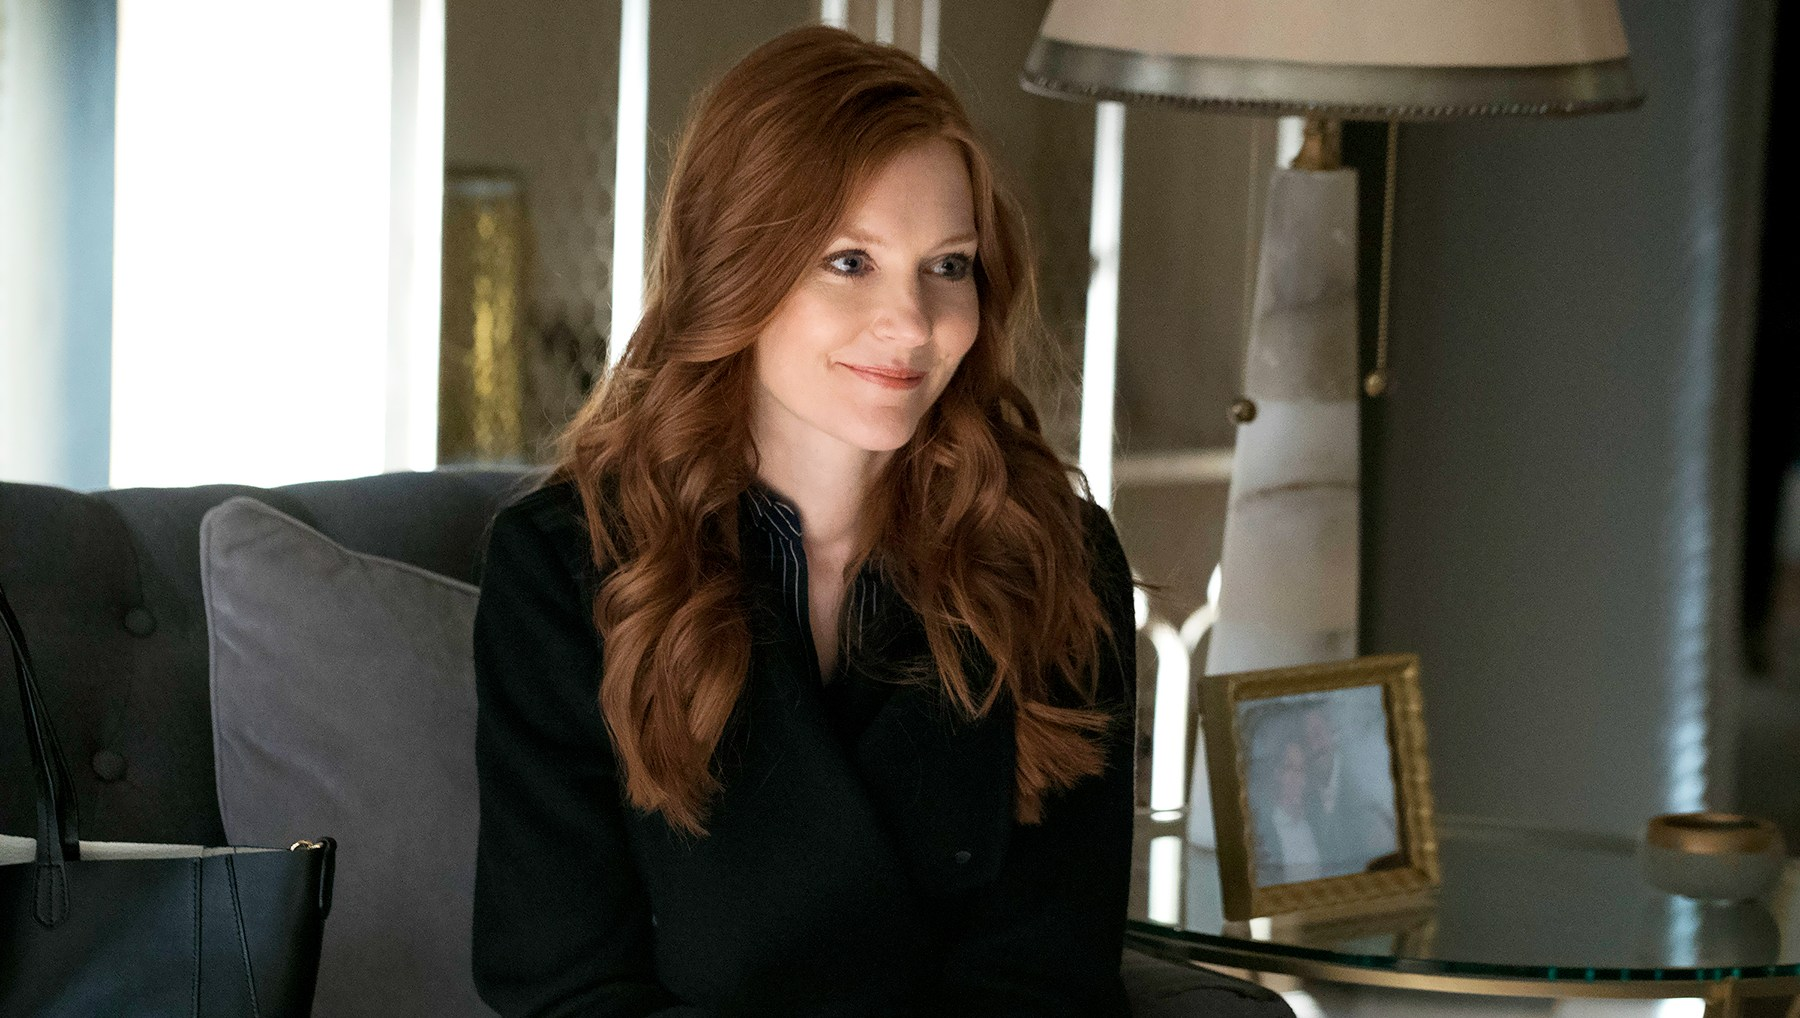 Darby Stanchfield on Scandal